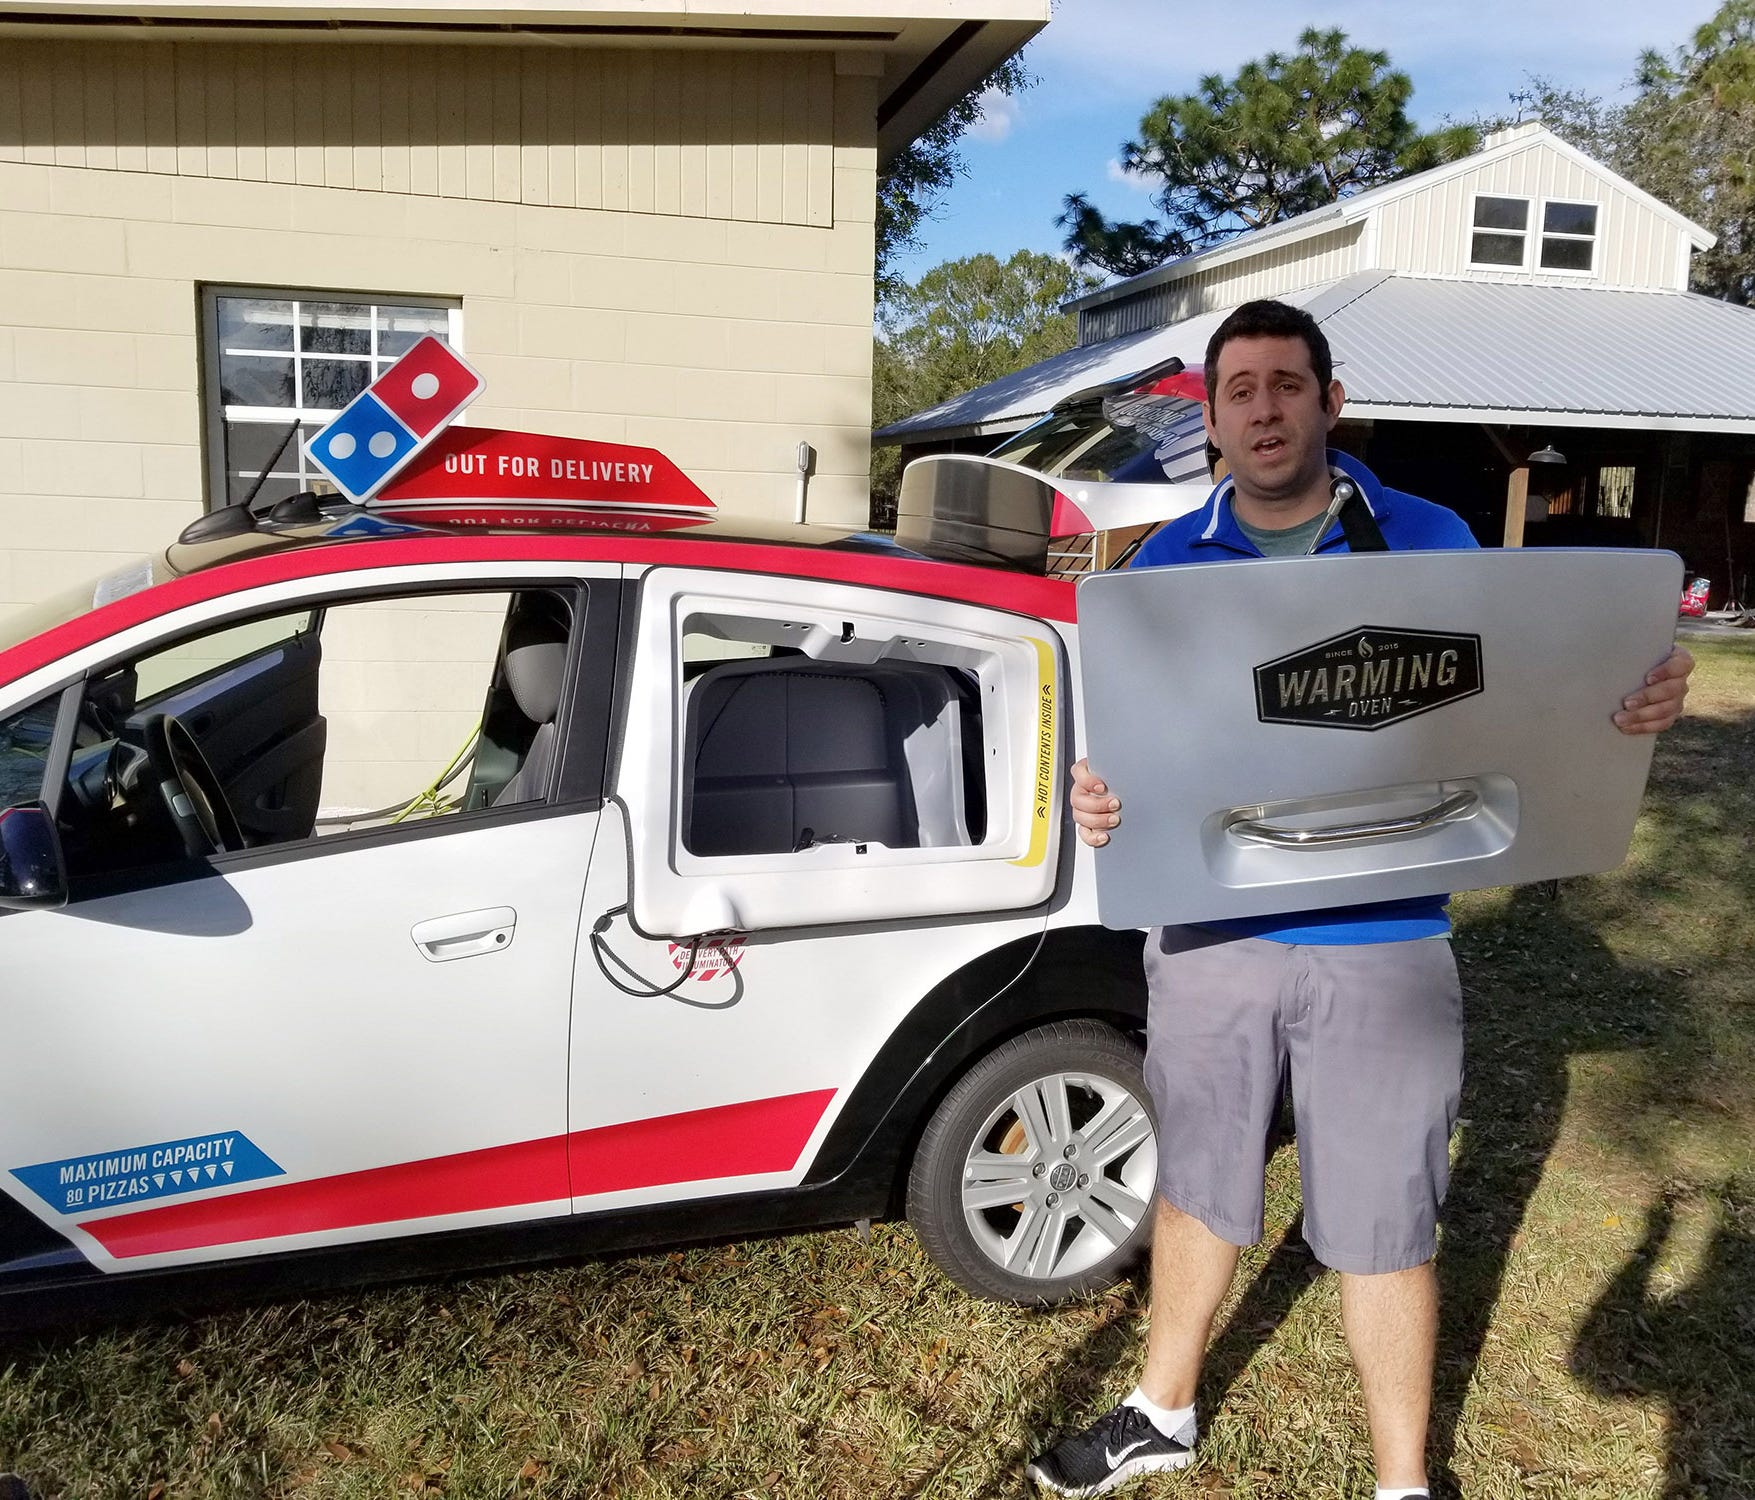 YouTube personality known as Samcrac is facing a potential legal threat from Domino's Pizza. He is with the Domino's Pizza delivery car he bought at auction and repaired.